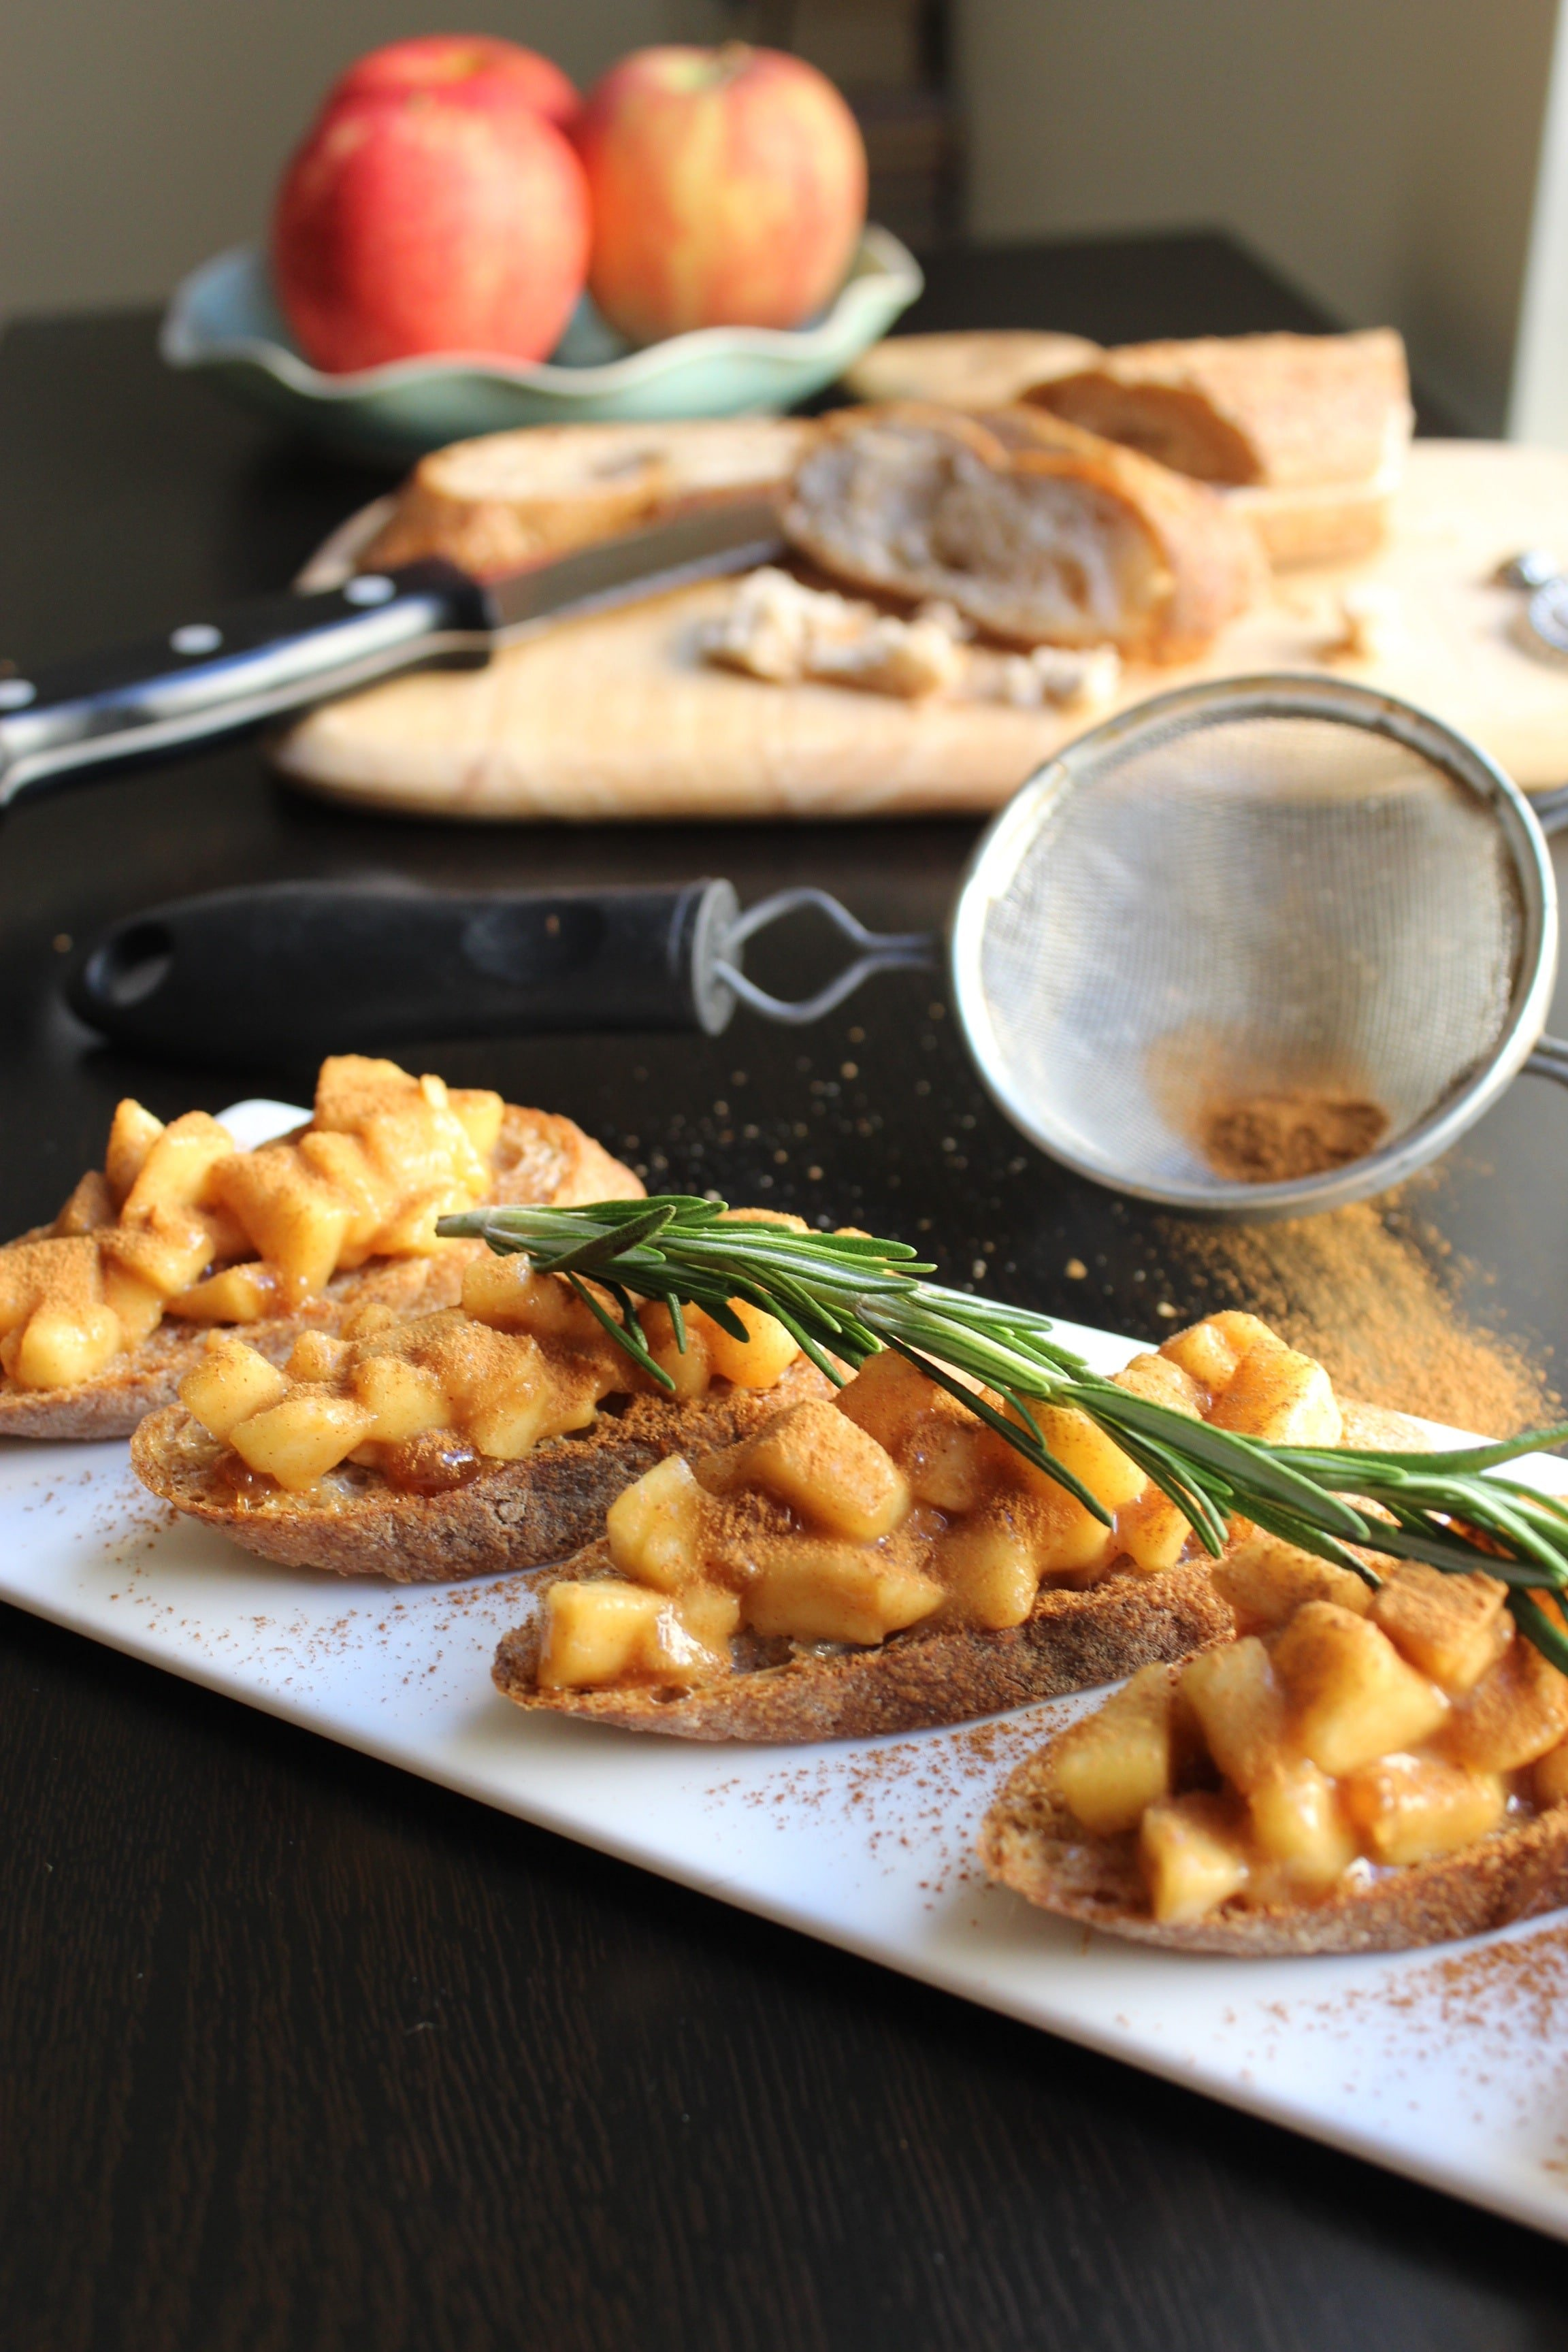 Apple Pie Bruschetta